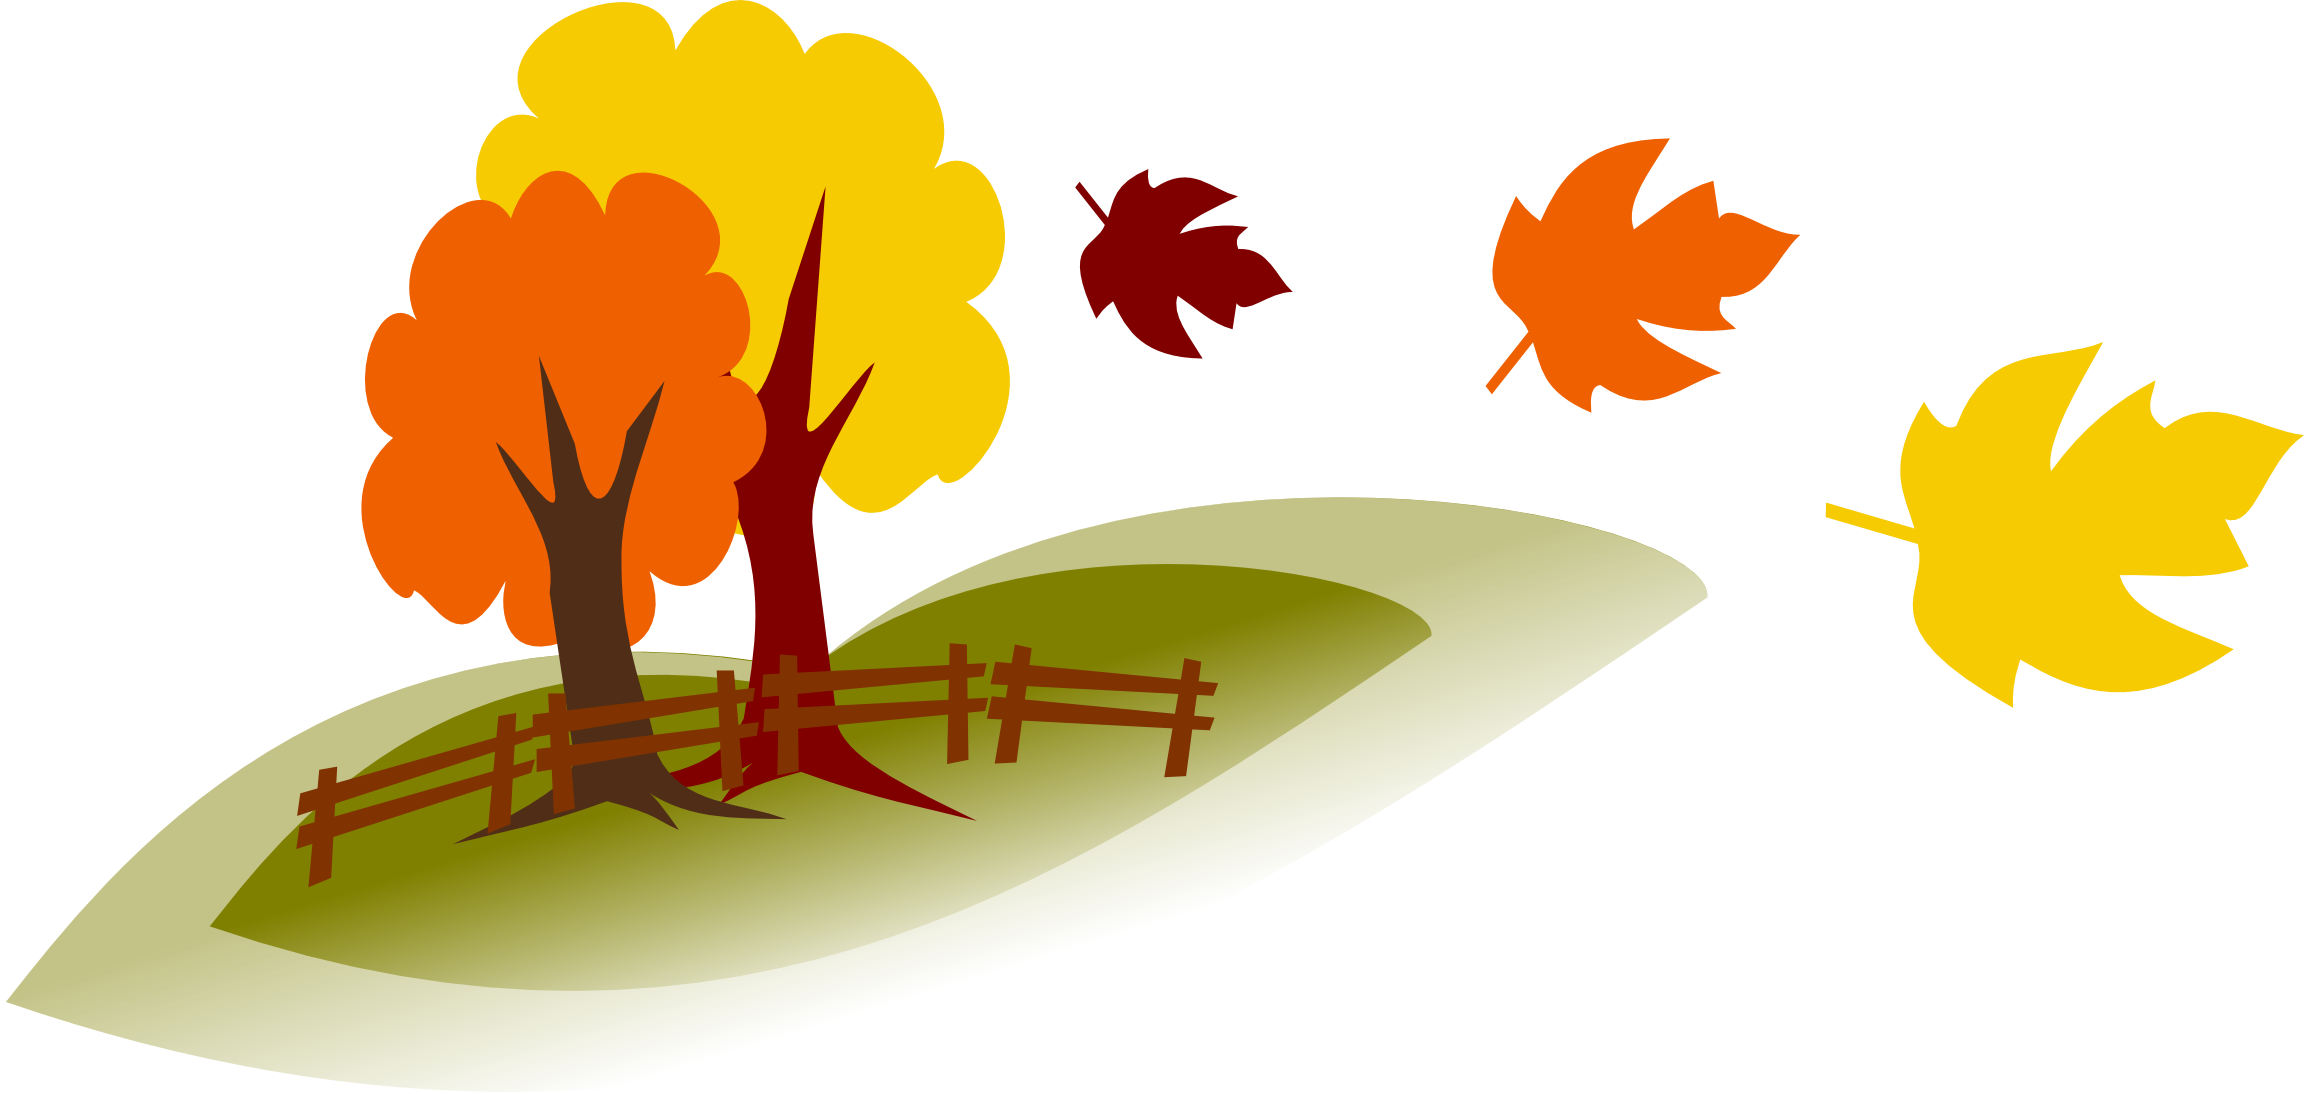 October Fall Png - October Design Transparent & PNG Clipart Free Download - YWD